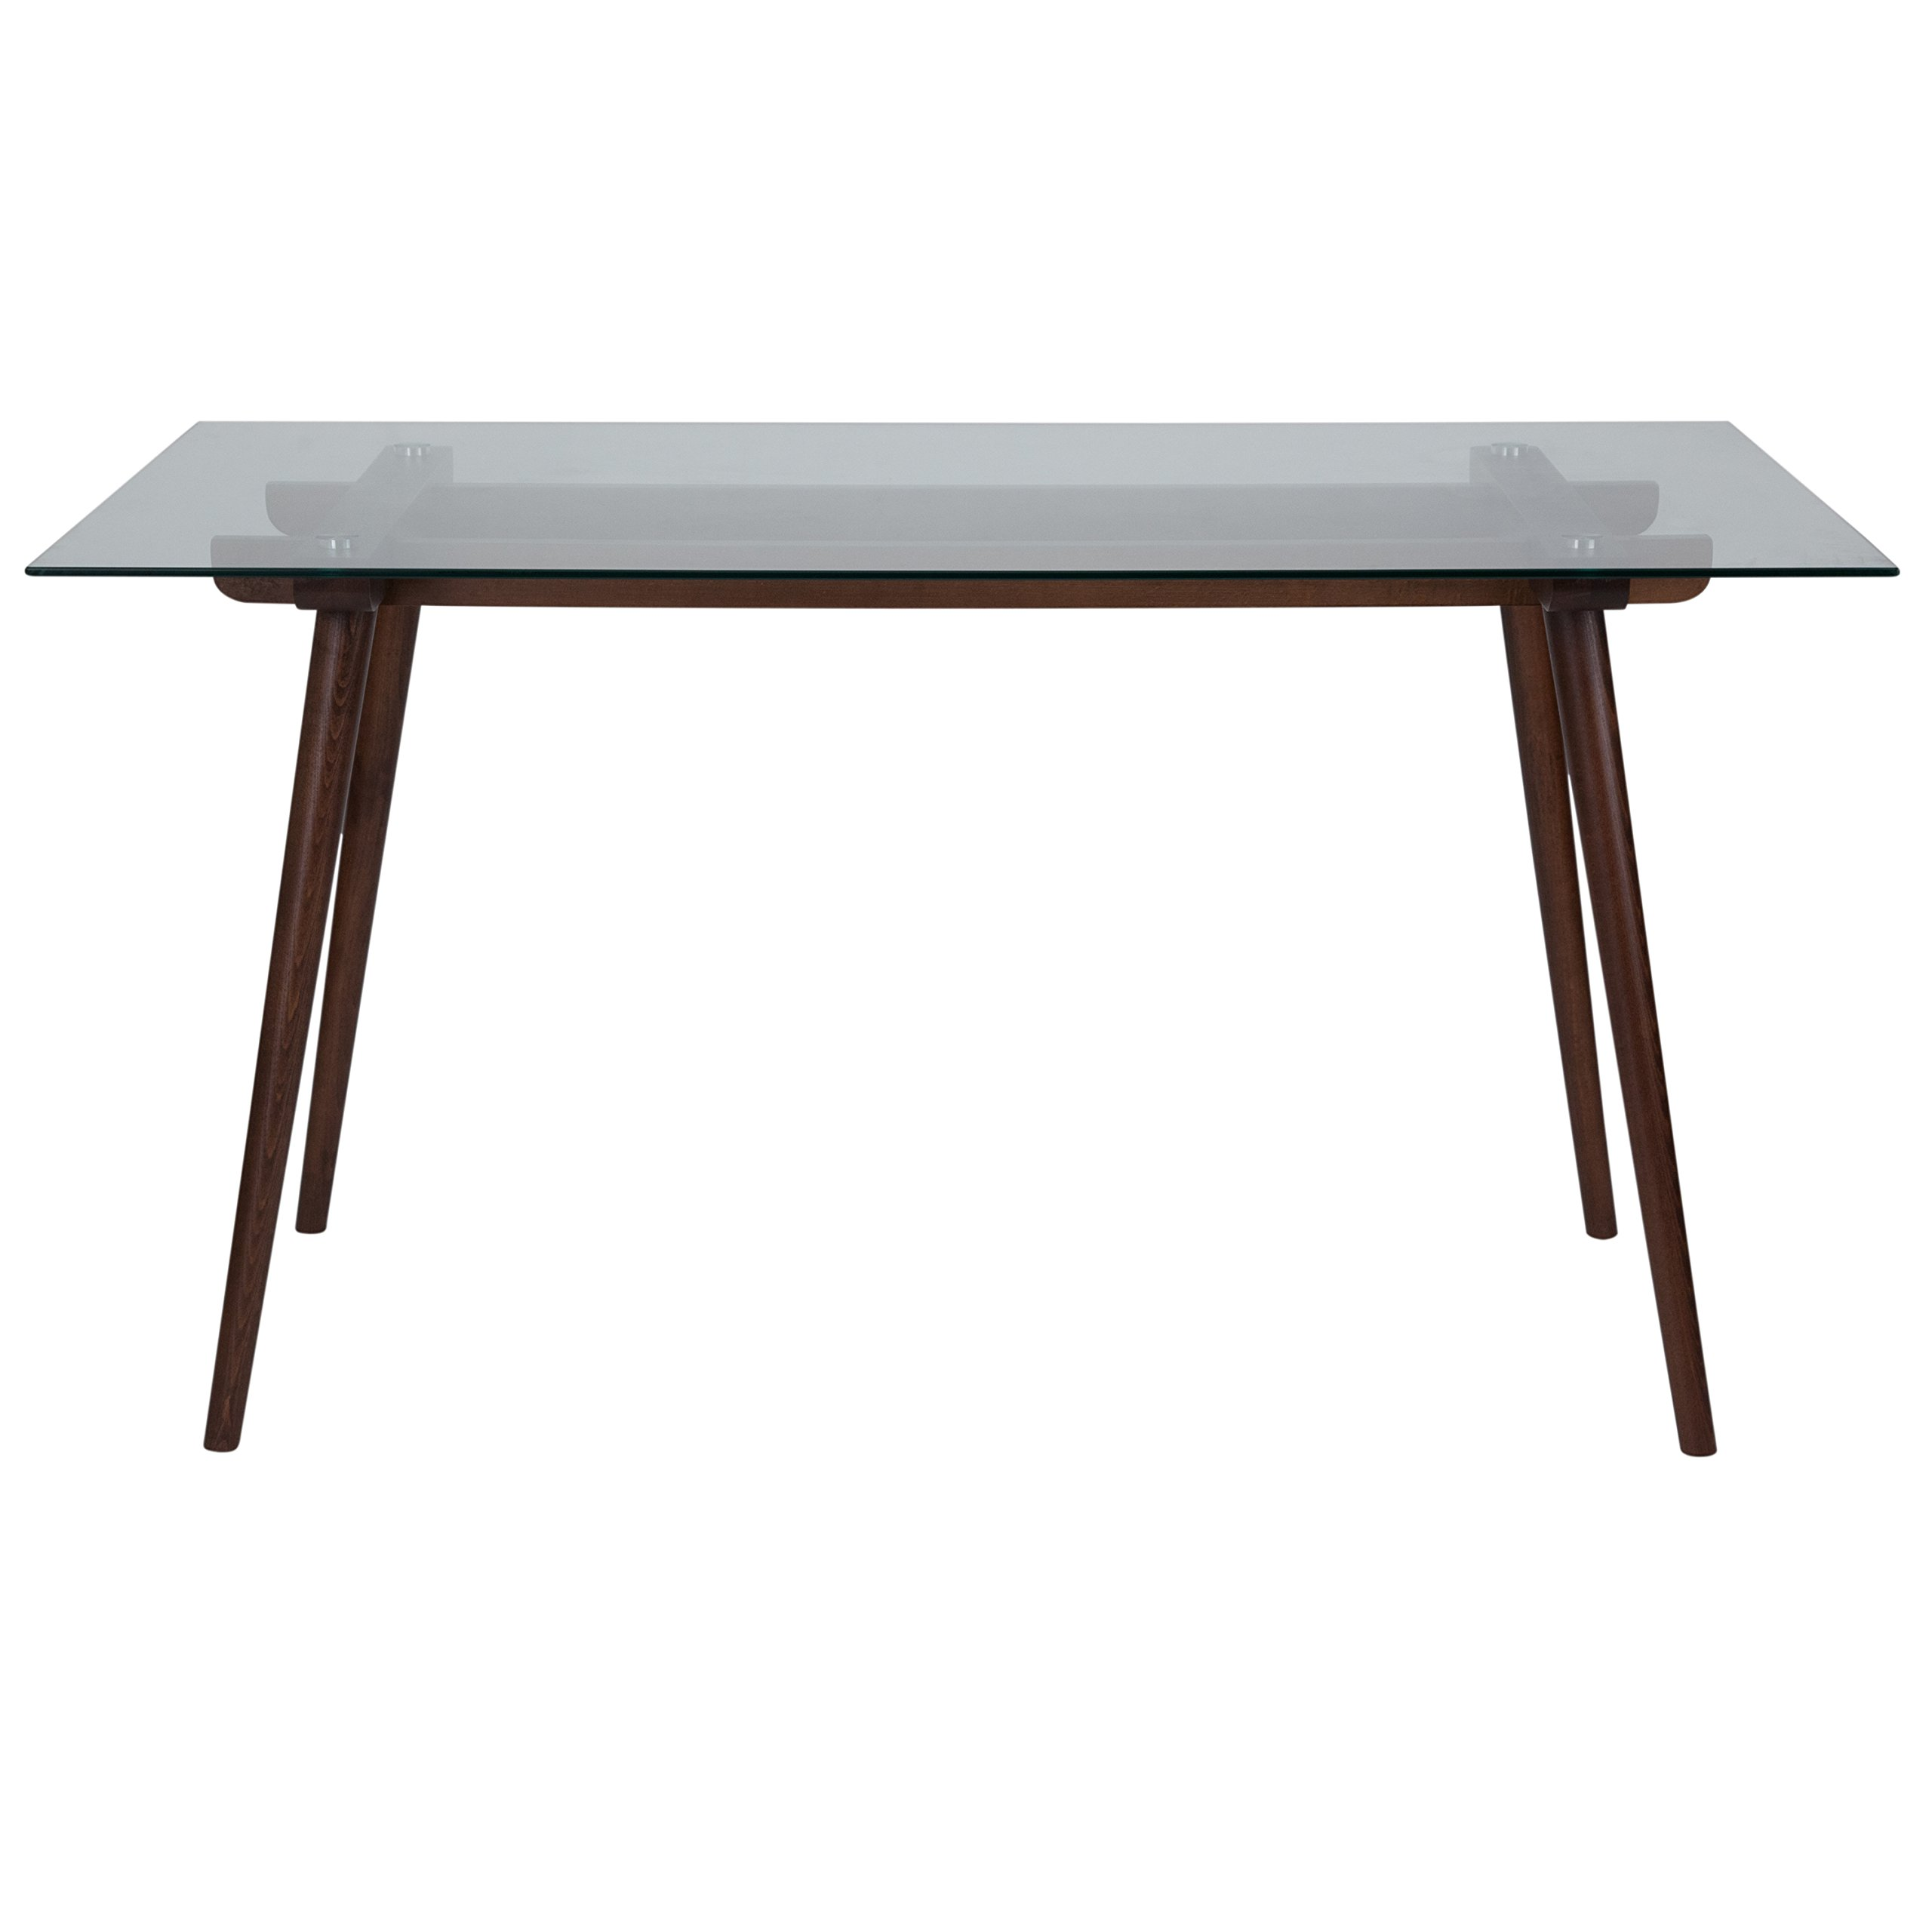 Flash Furniture Meriden 31.5'' x 55'' Solid Walnut Wood Table with Clear Glass Top by Flash Furniture (Image #2)